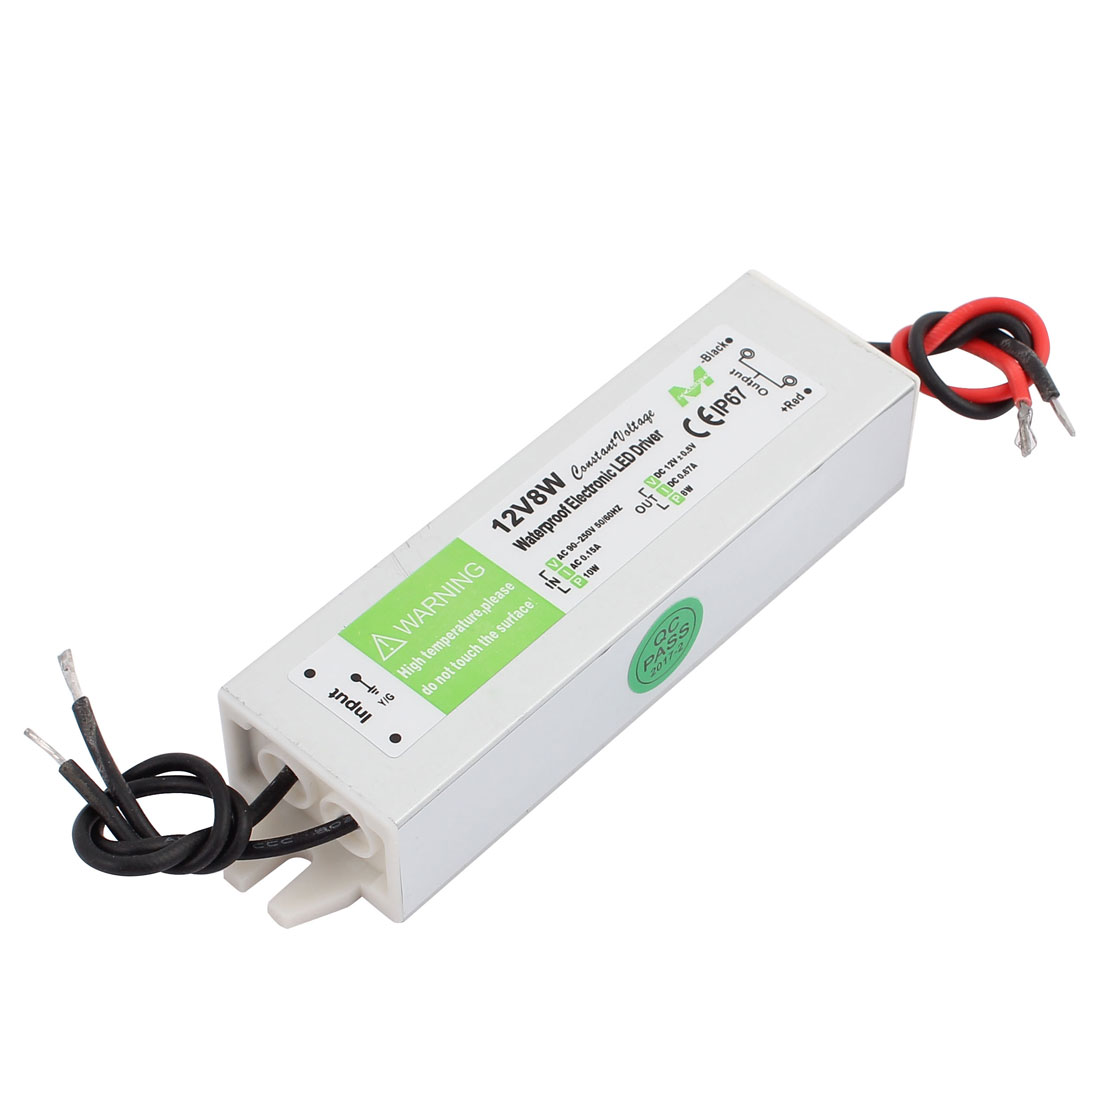 AC90~250V to DC12V 8 Watt Transformer IP67 Waterproof LED Driver Power Supply